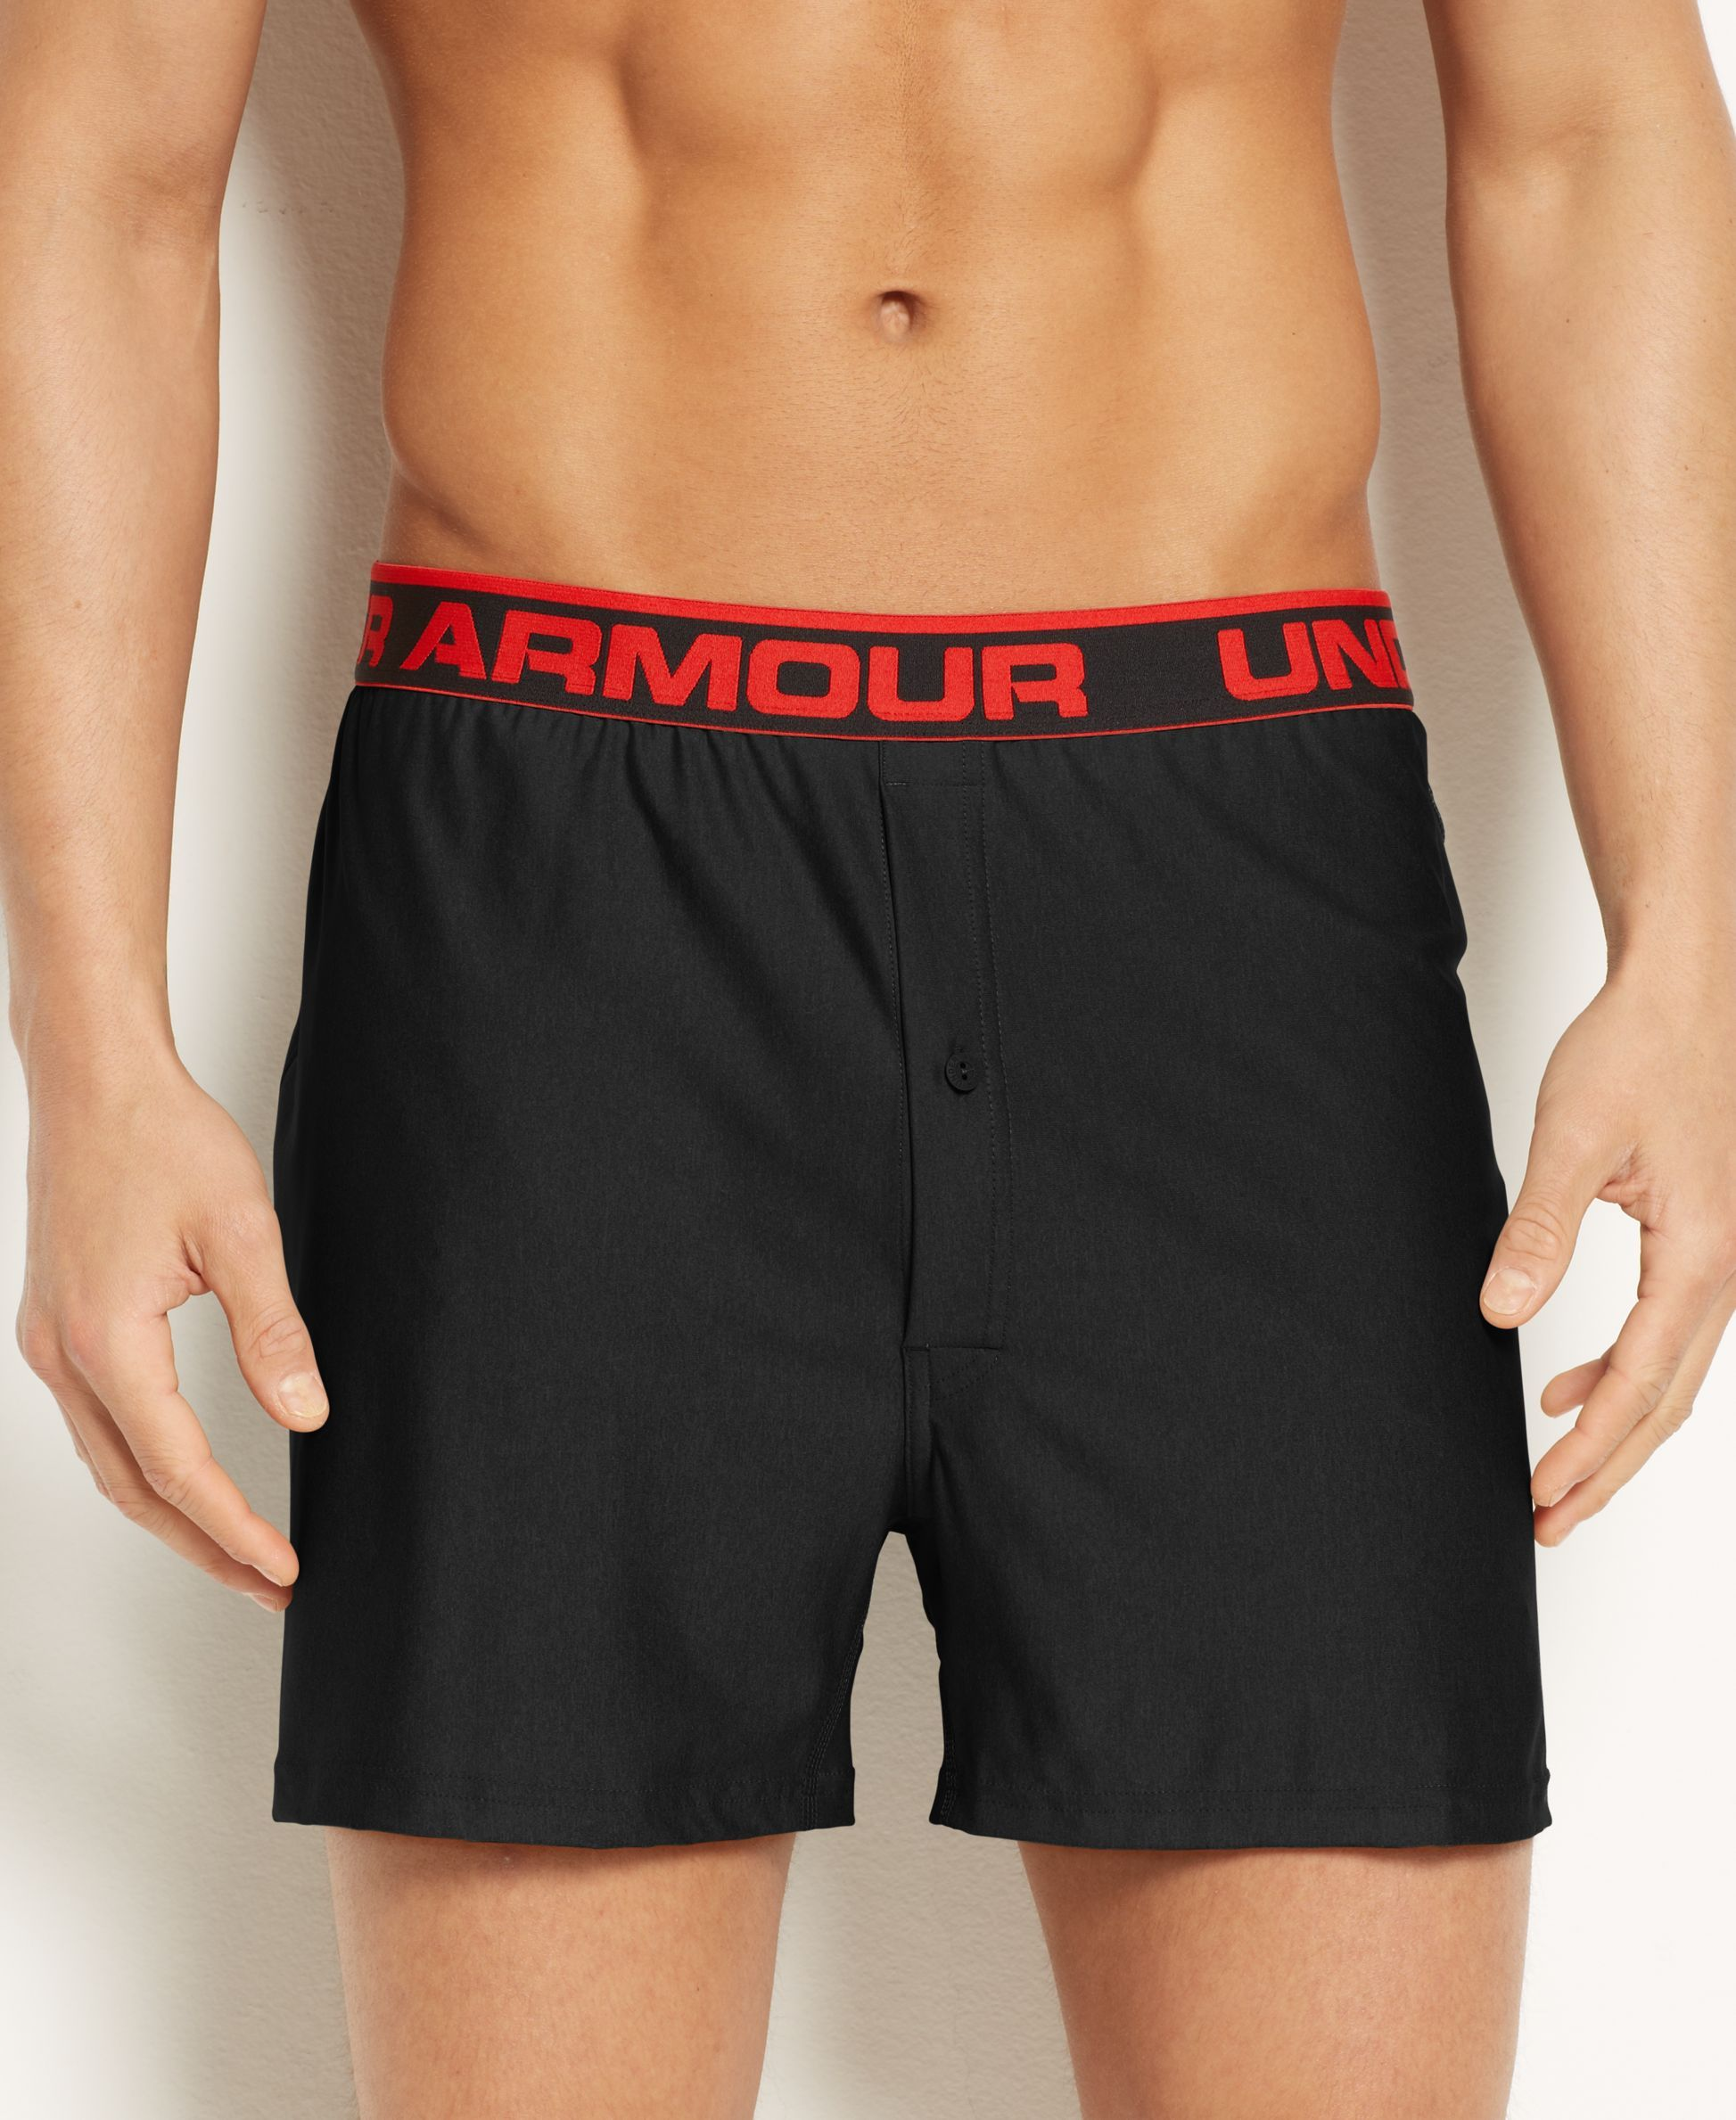 c22c02cdd57 Under Armour Men s Underwear